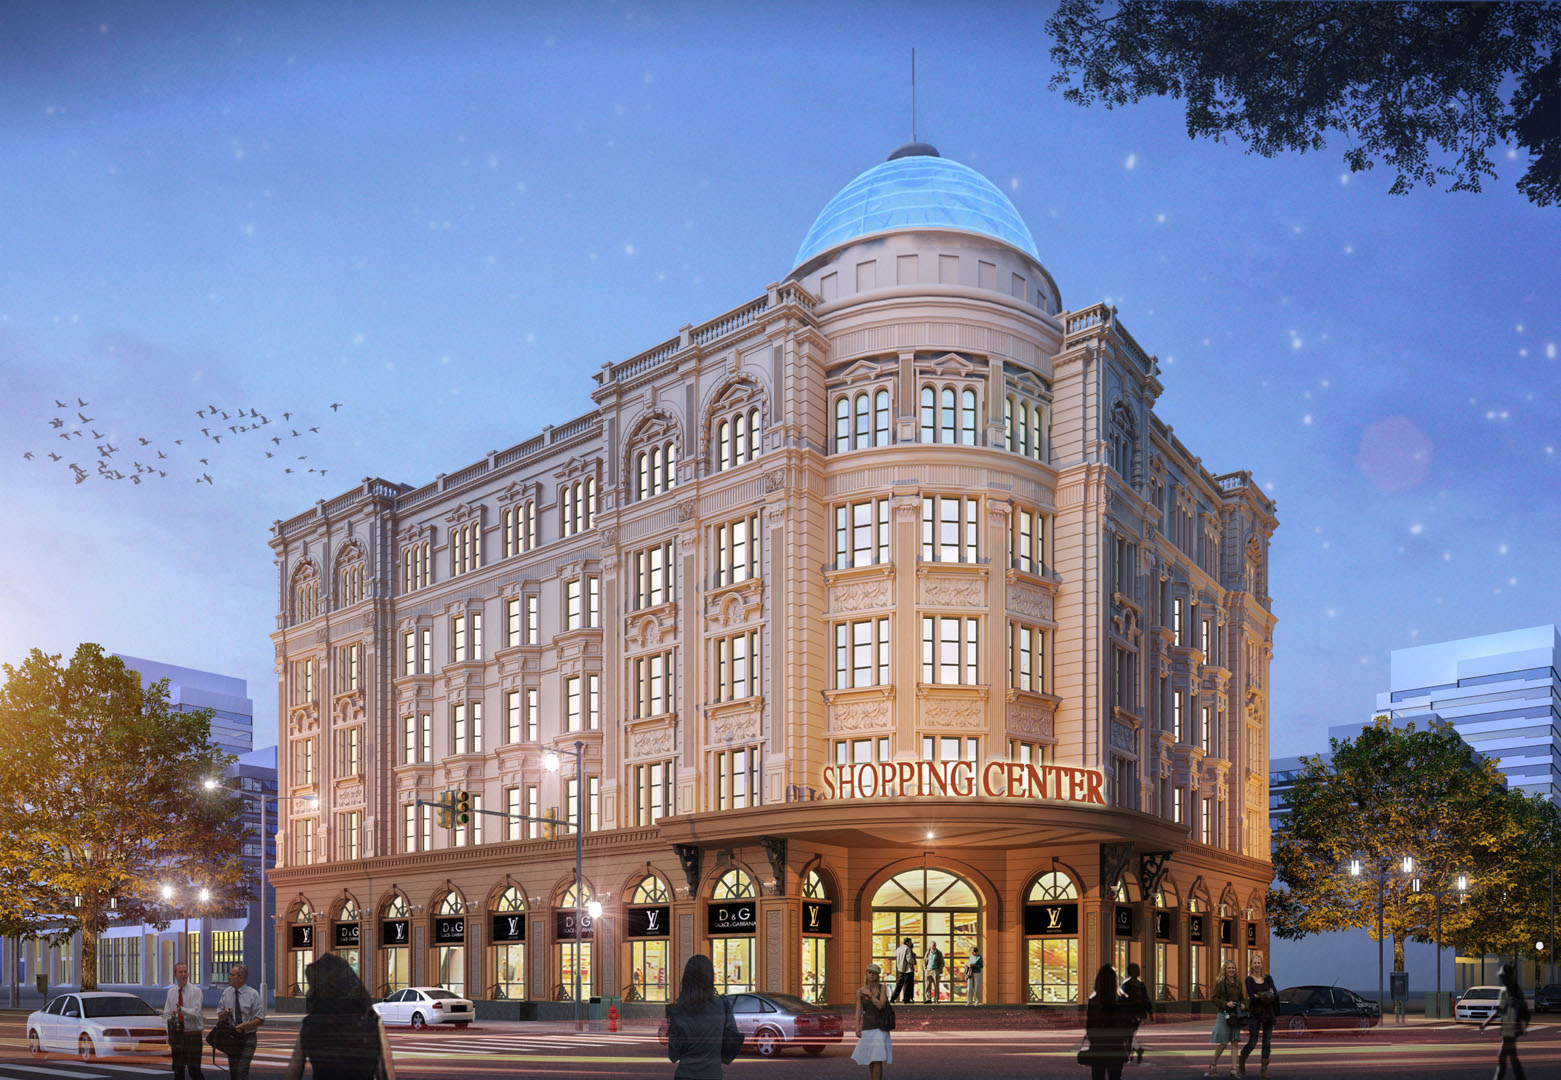 A LUXURY SHOPPING CENTER   Ho Chi Minh City   Concept Designed by DVNP Architects